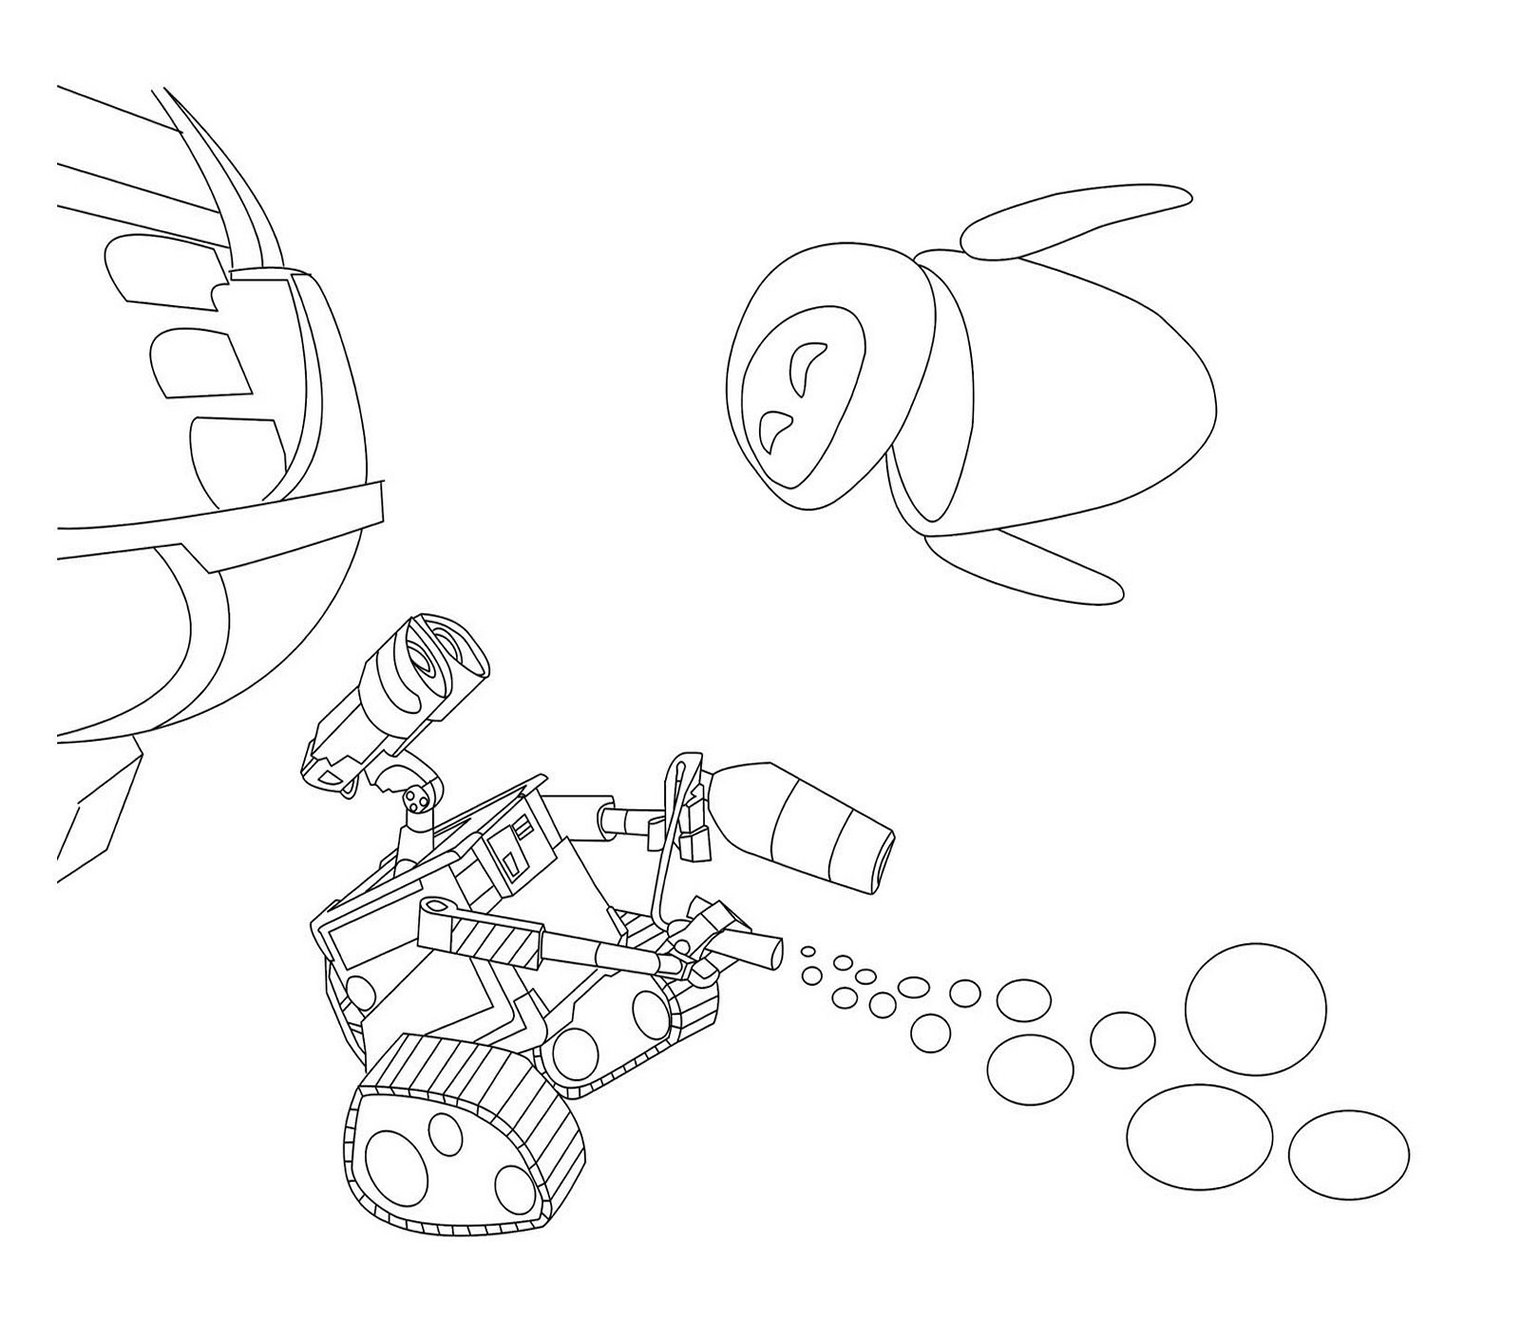 Wall E Coloring Pages Free Printable : Free wall e coloring pages and games